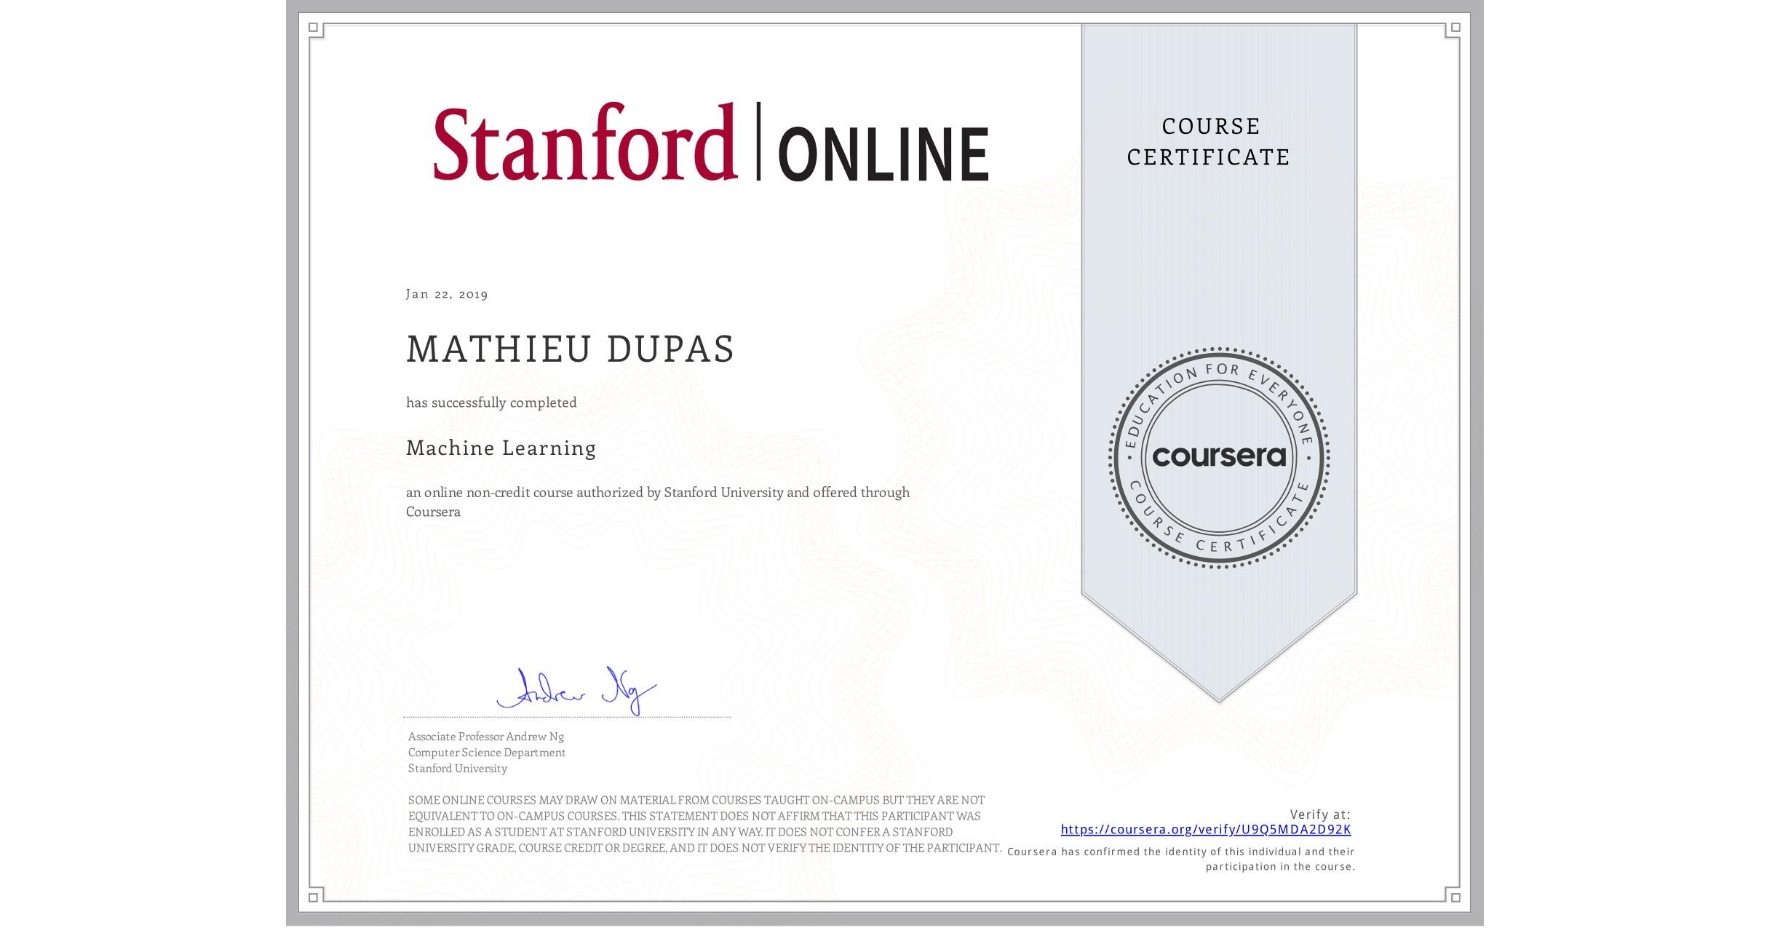 View certificate for MATHIEU DUPAS, Machine Learning, an online non-credit course authorized by Stanford University and offered through Coursera